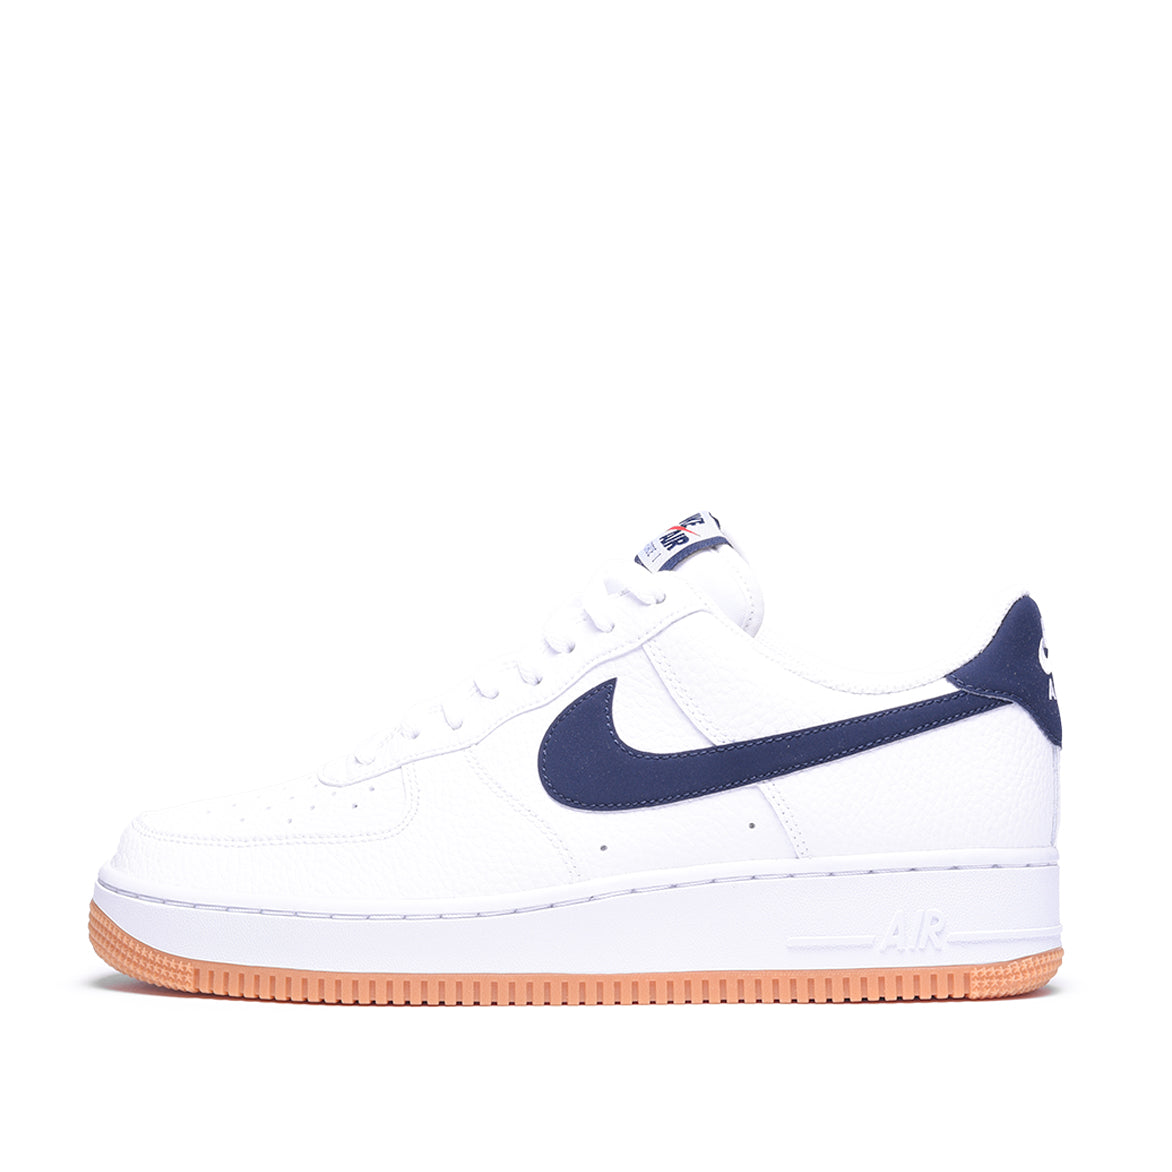 magasin en ligne 7dffb 0b81c AIR FORCE 1 `07 2 - WHITE / OBSIDIAN